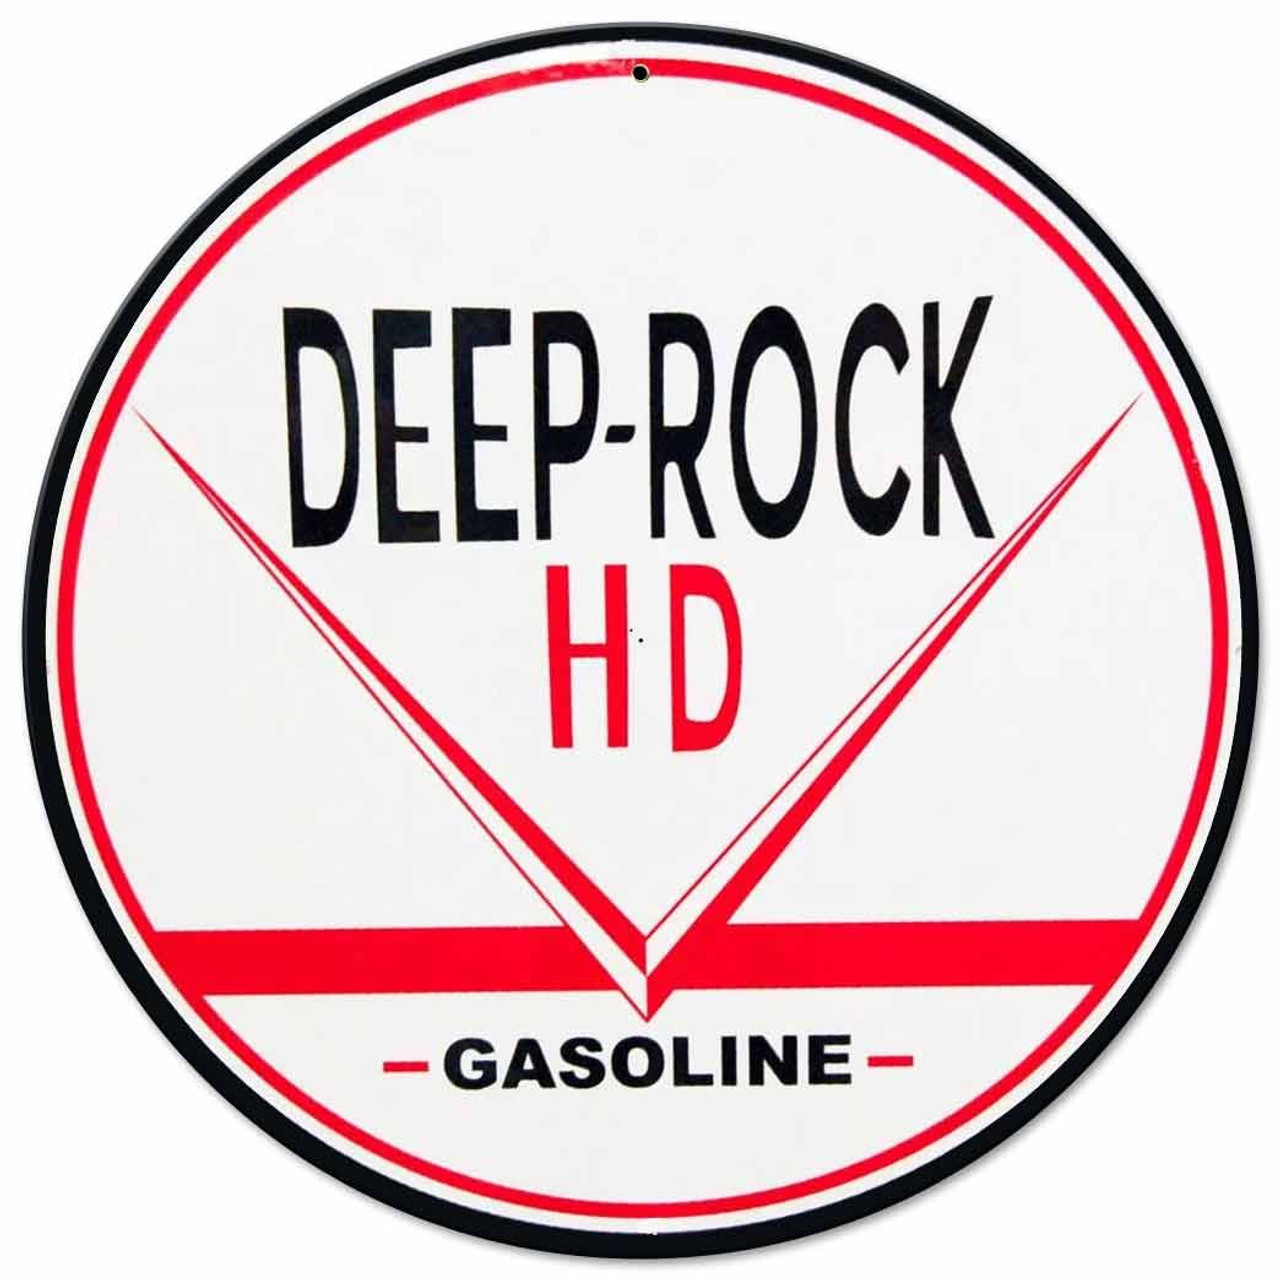 Deep Rock HD Gas Metal Sign 14 x 14 Inches